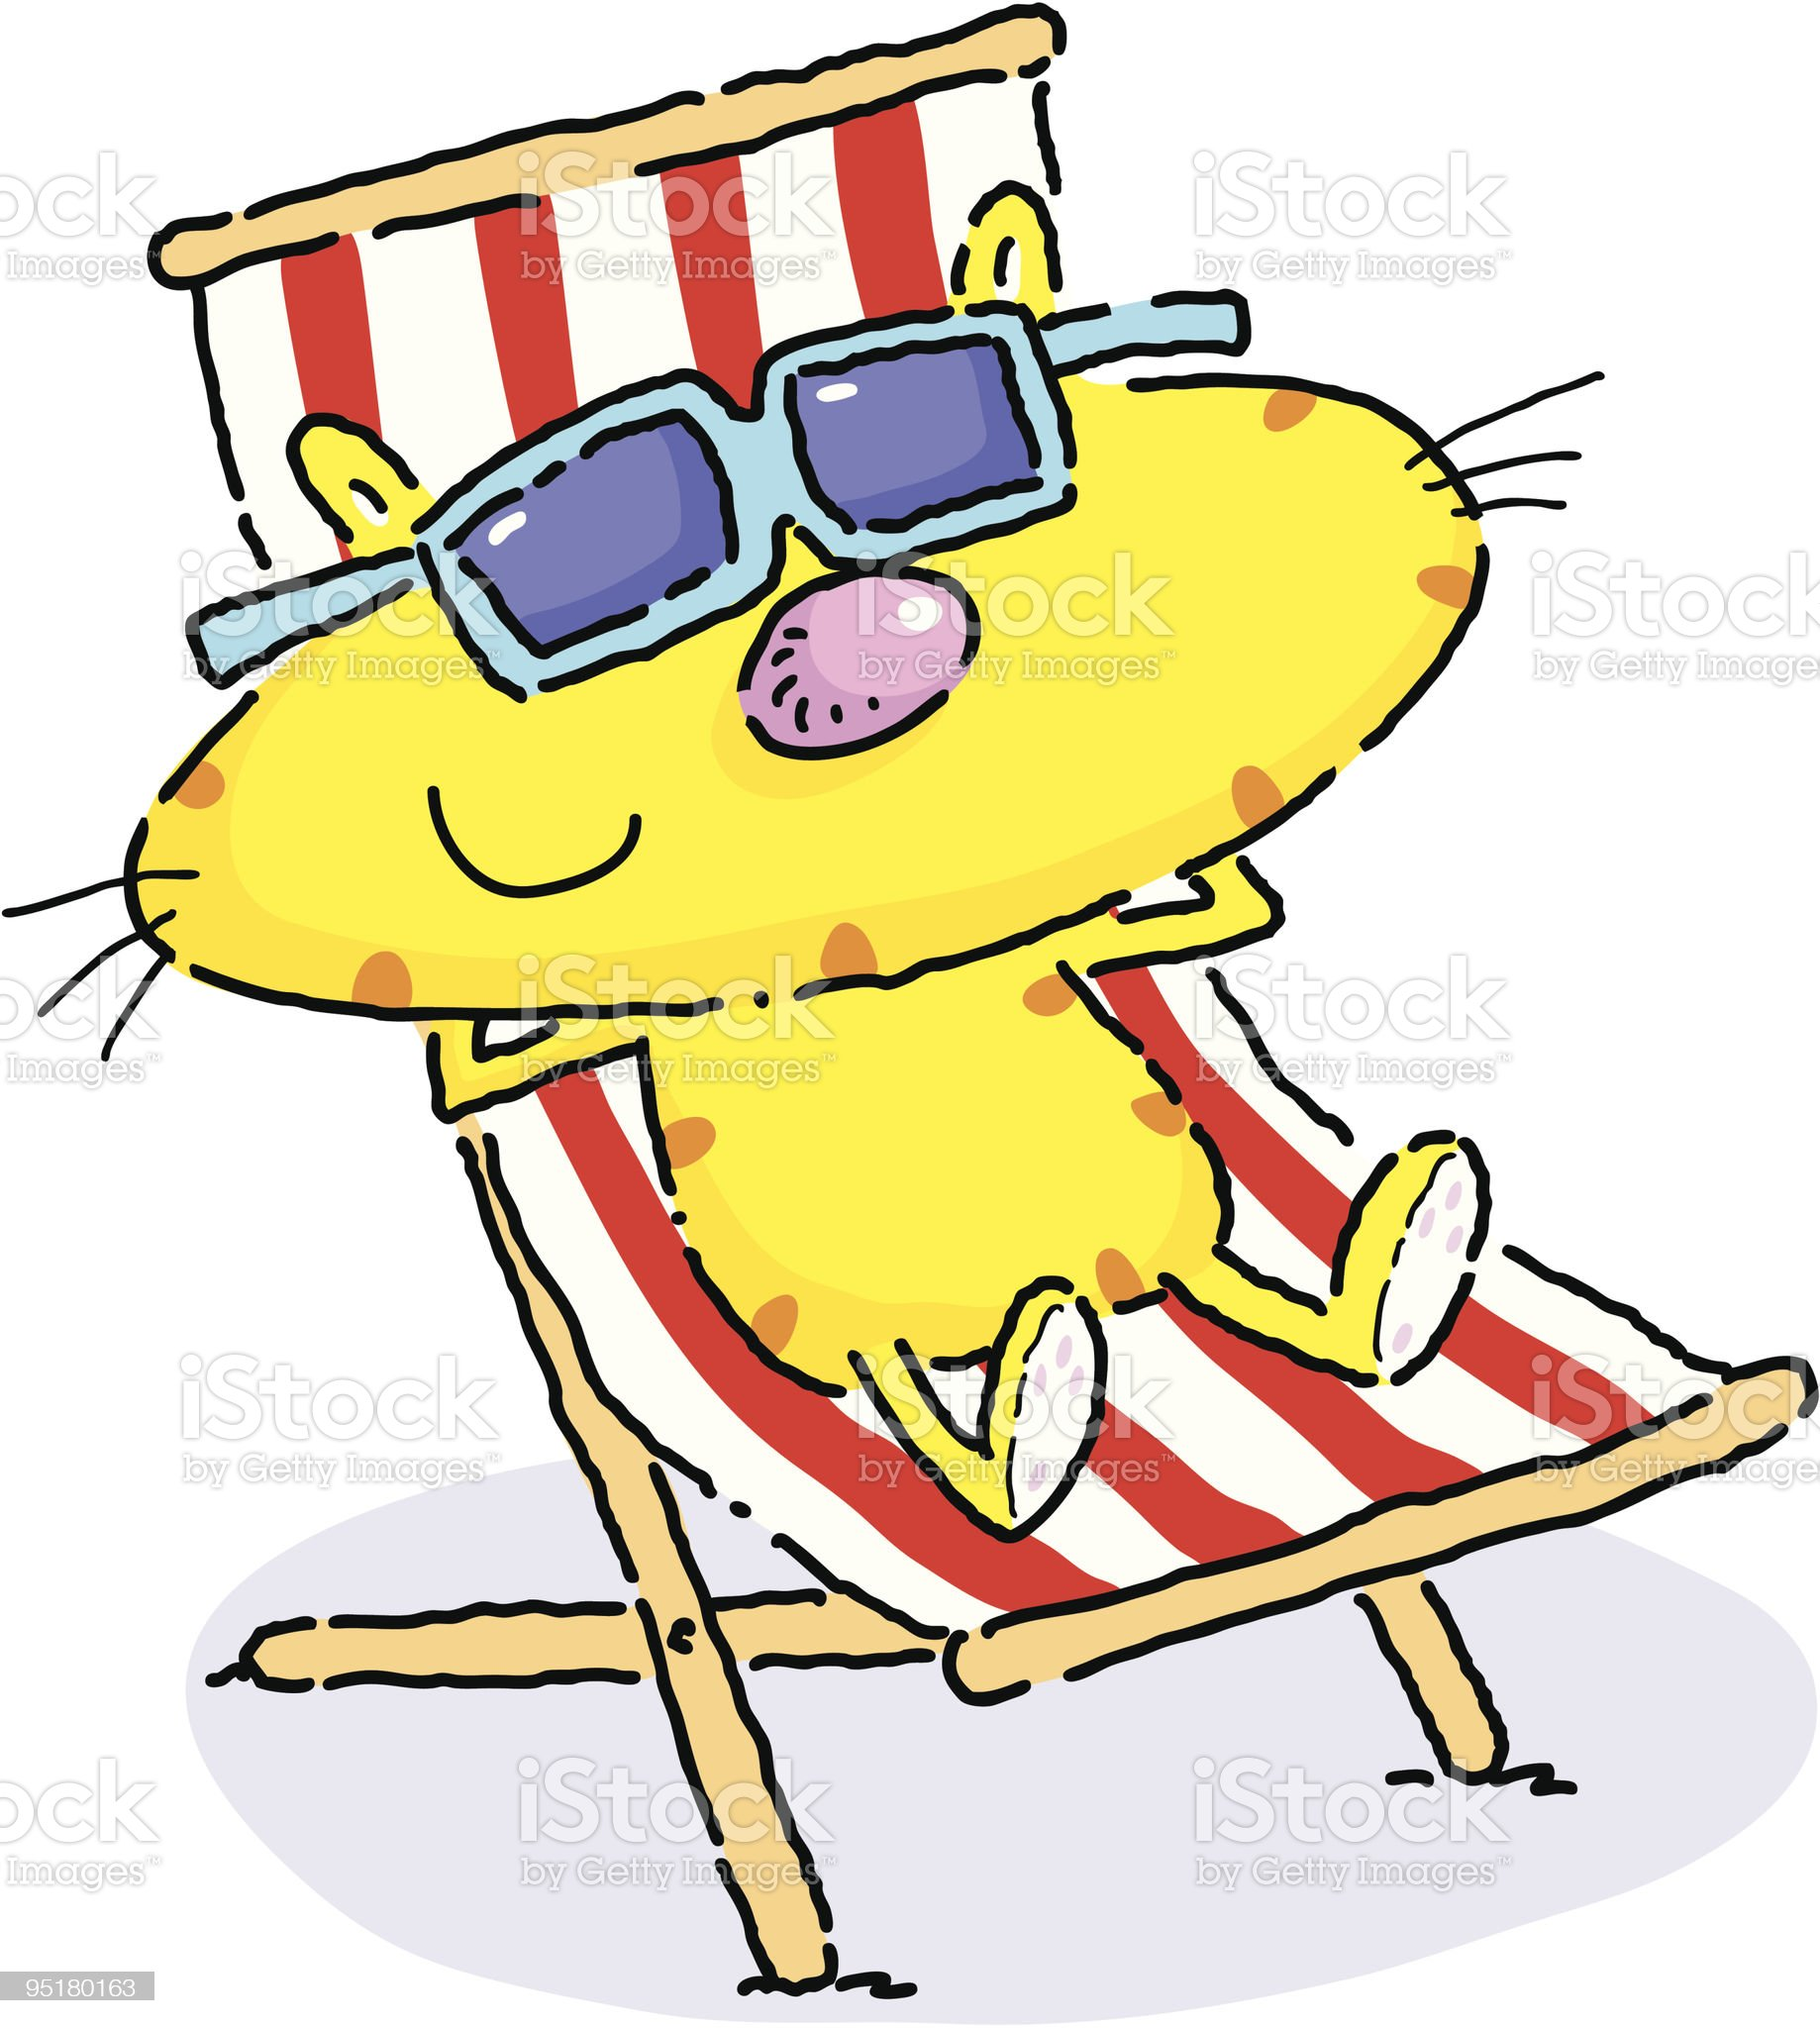 Deckchair Cat royalty-free stock vector art